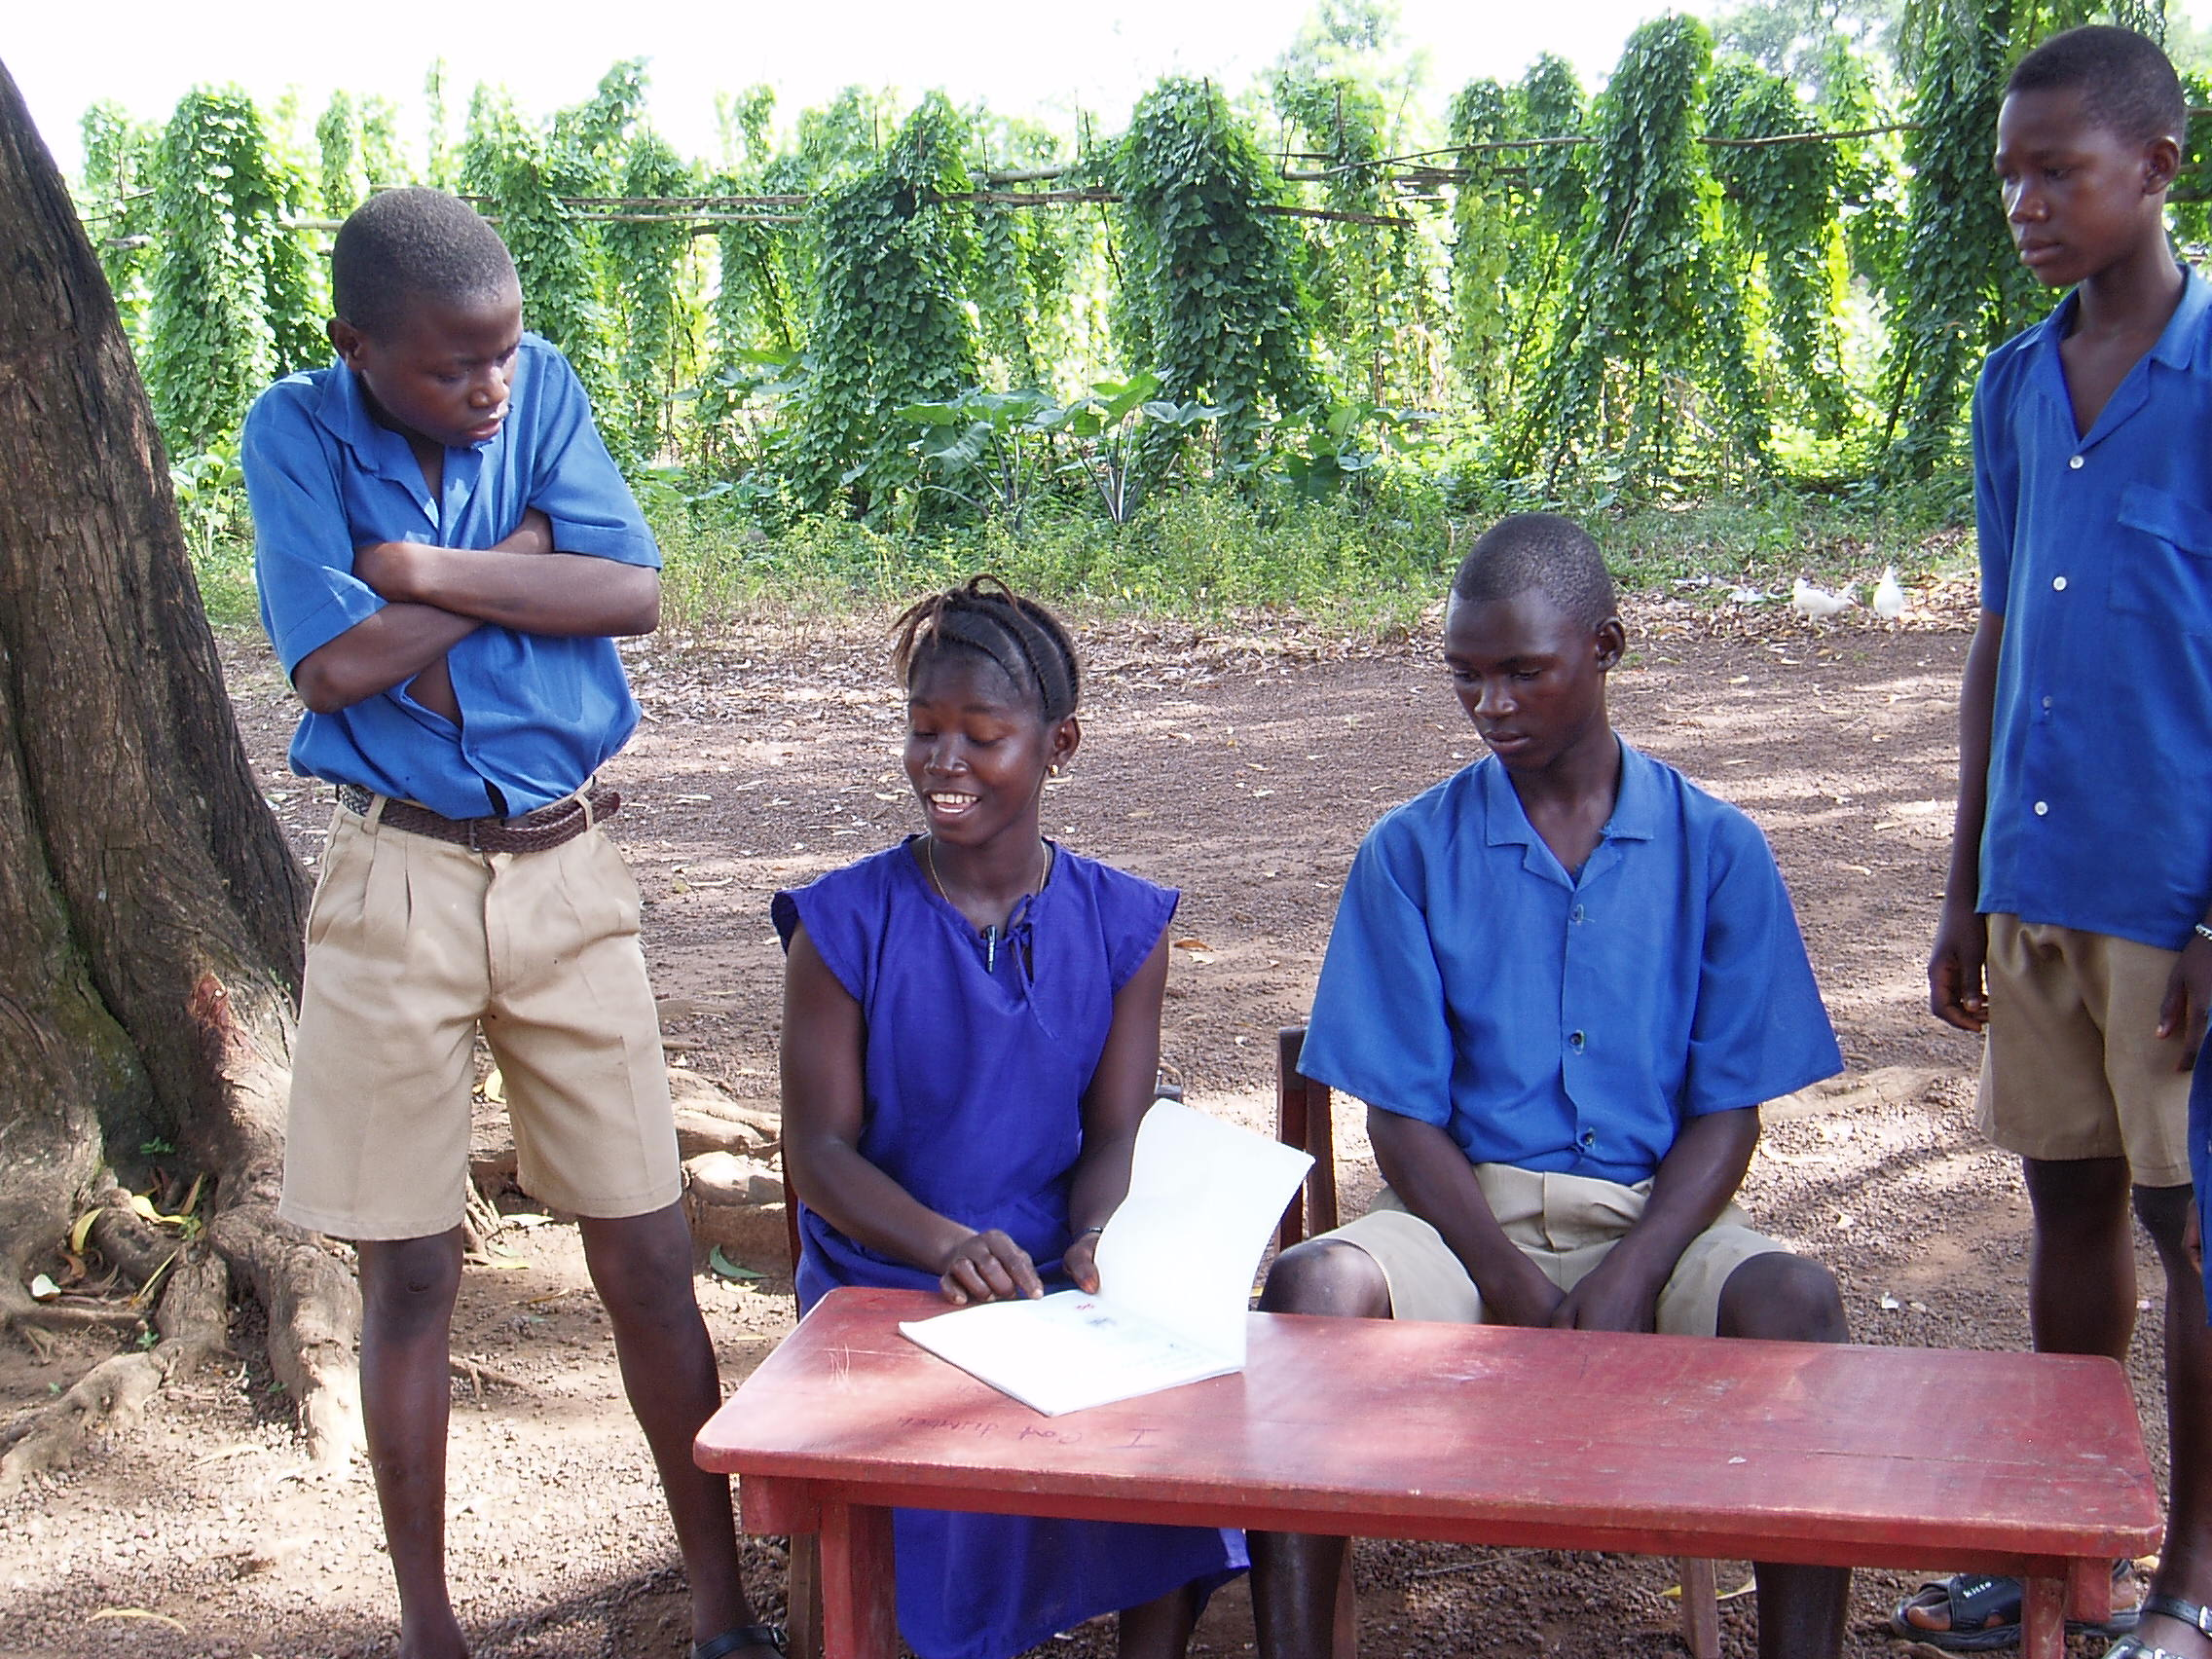 Year 8 and 9 students from Makeni Secondary School, Sierra Leone, performing a play they wrote about conflict resolution. Photo by Jane Weston